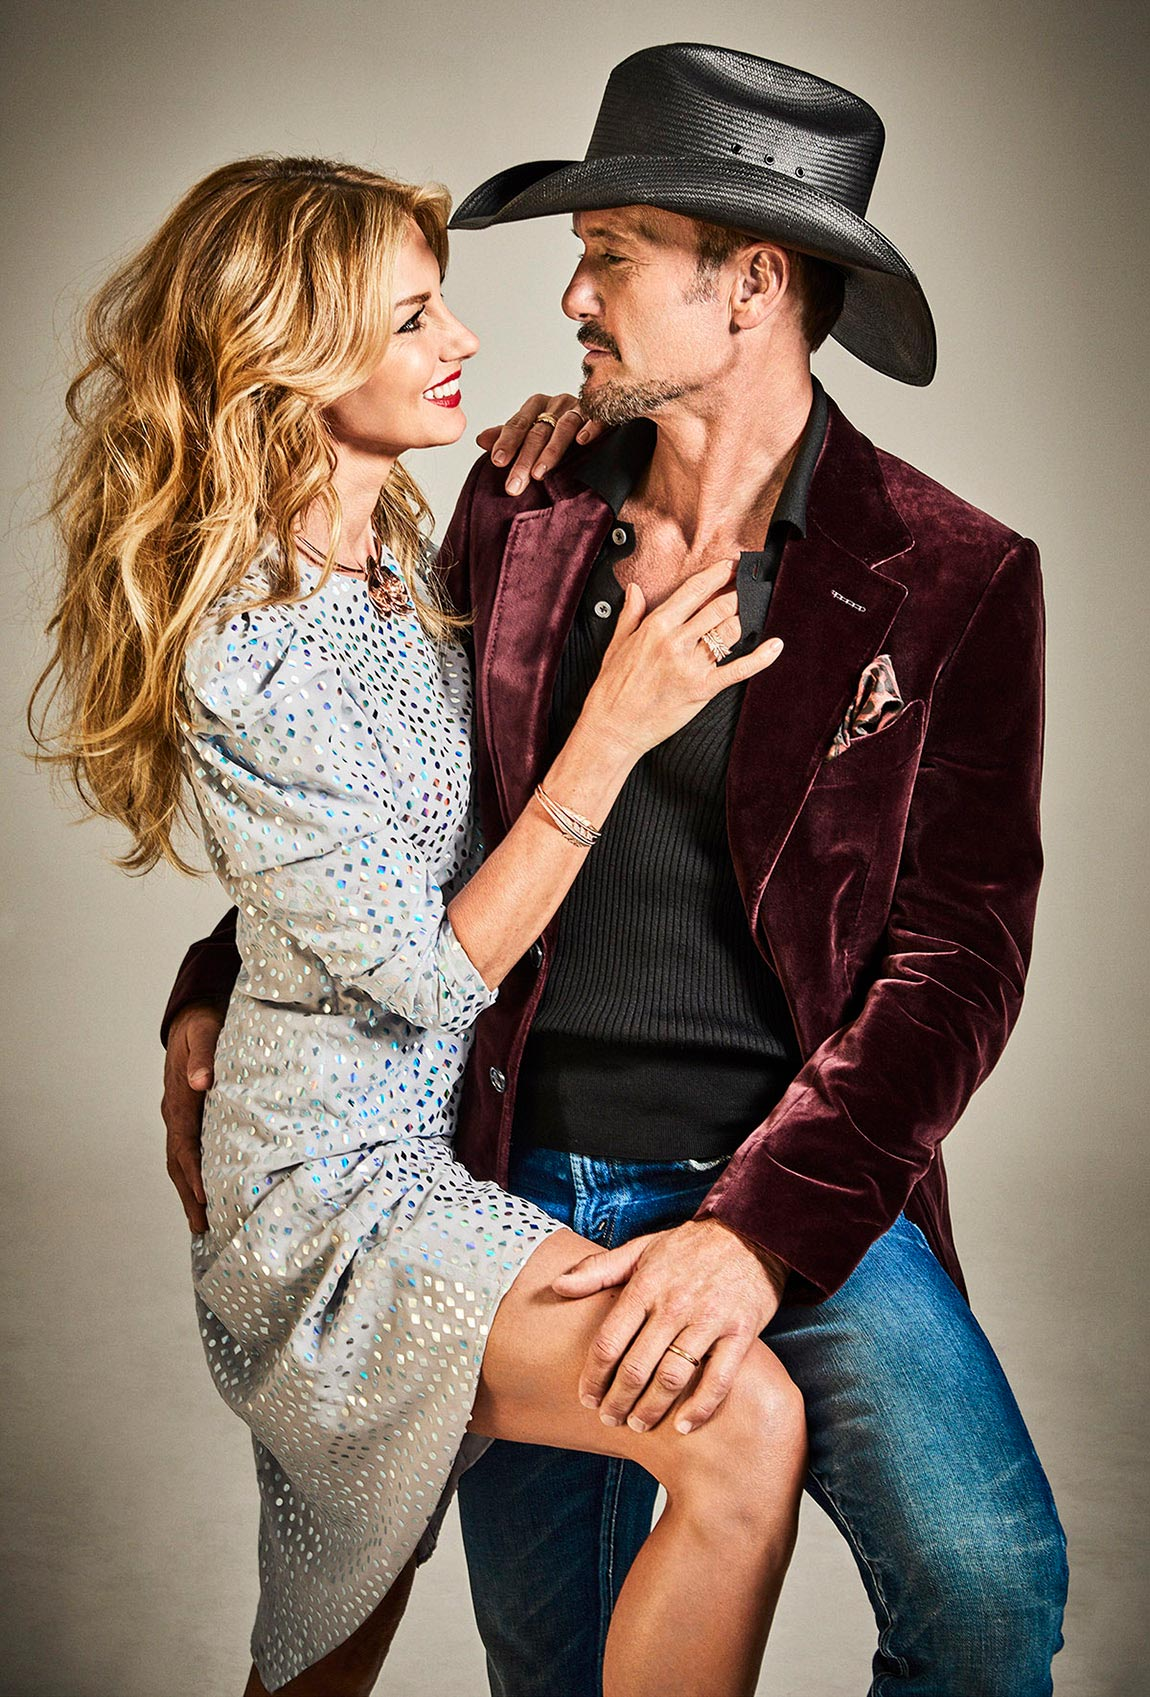 FAITH HILL + TIM MCGRAW